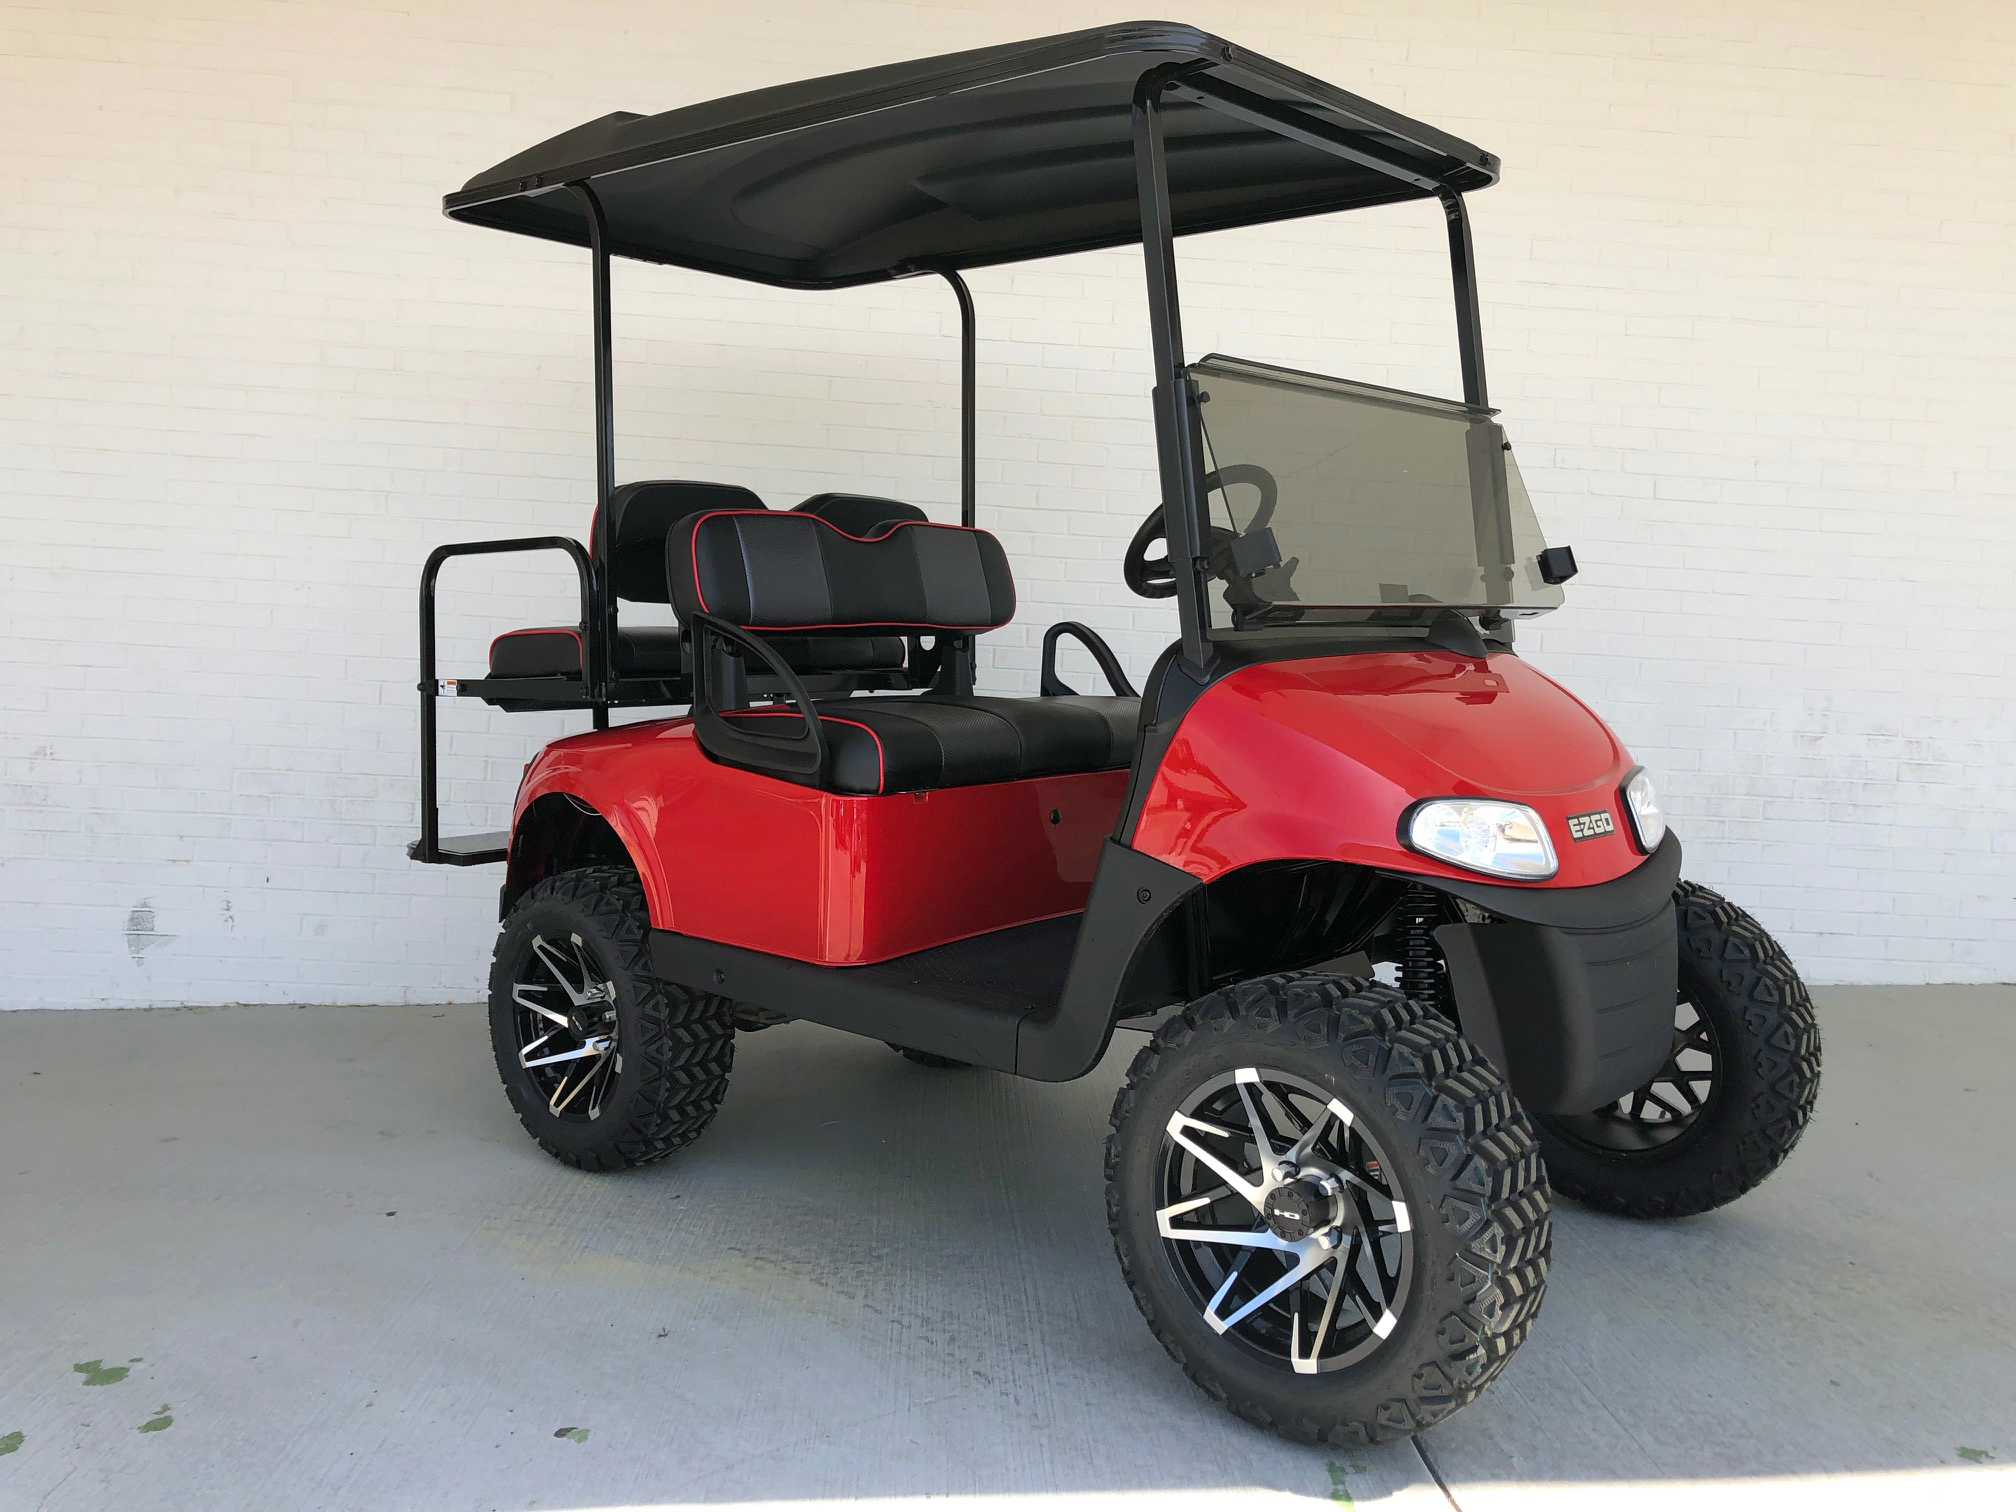 Lifted Red EZ-GO TXT Golf Cart